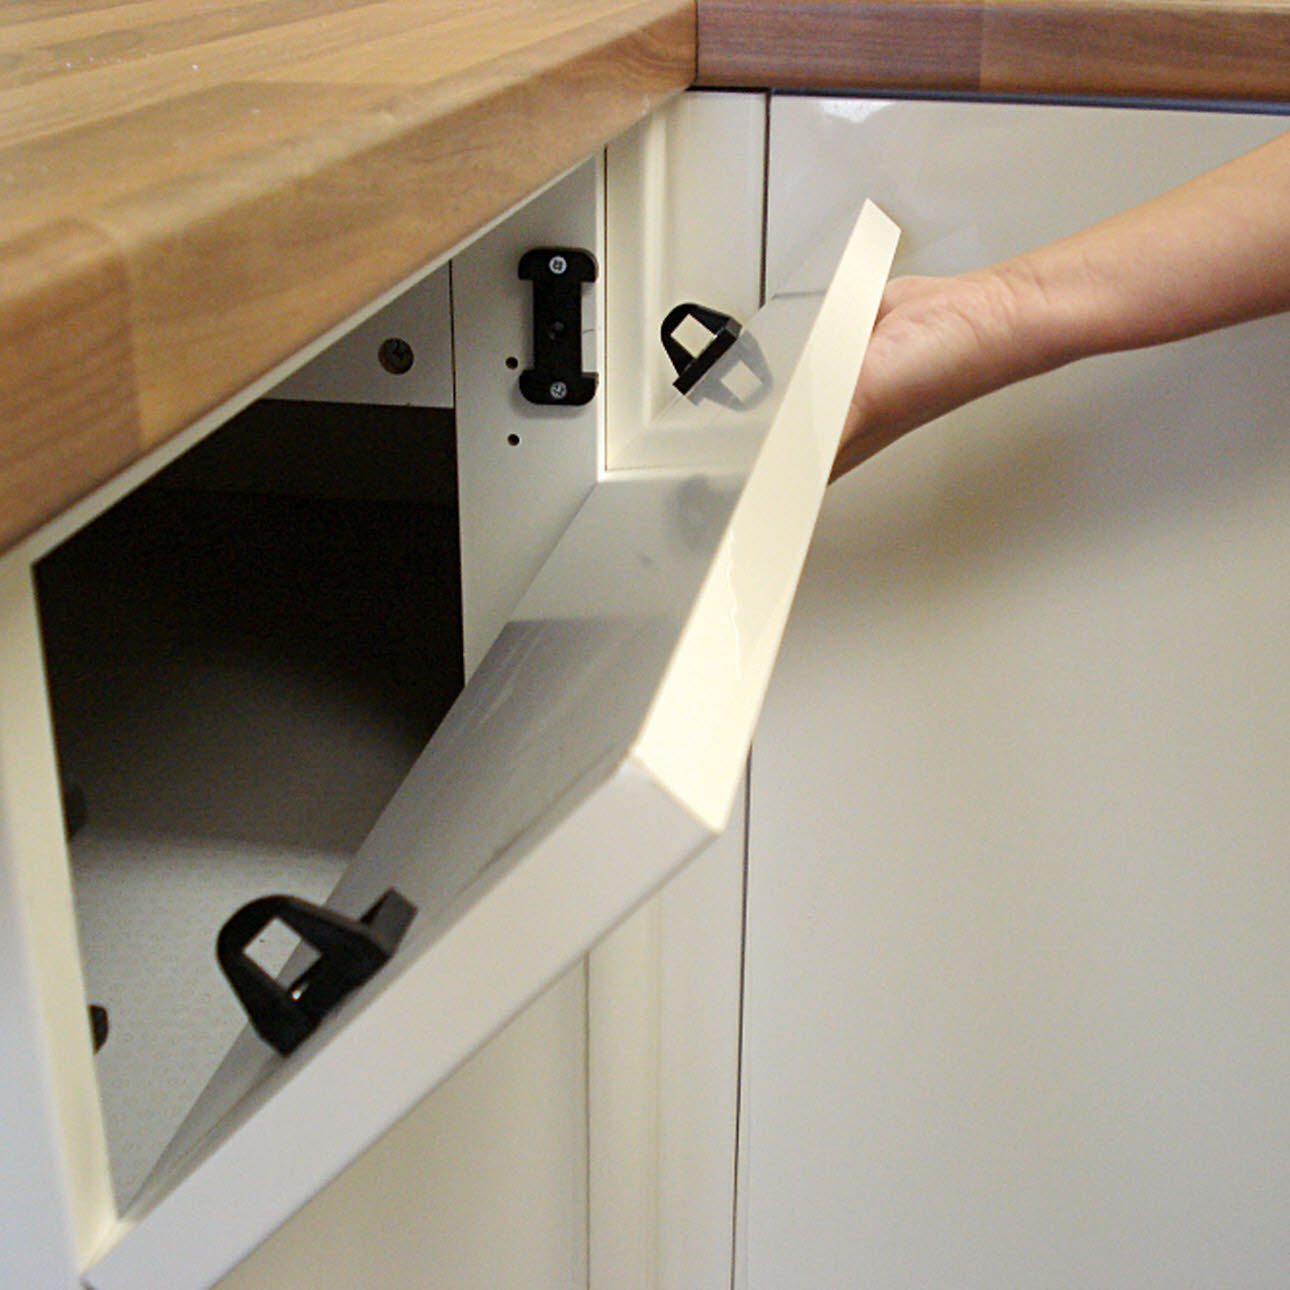 Close up of kitchen unit panel lock mechanism